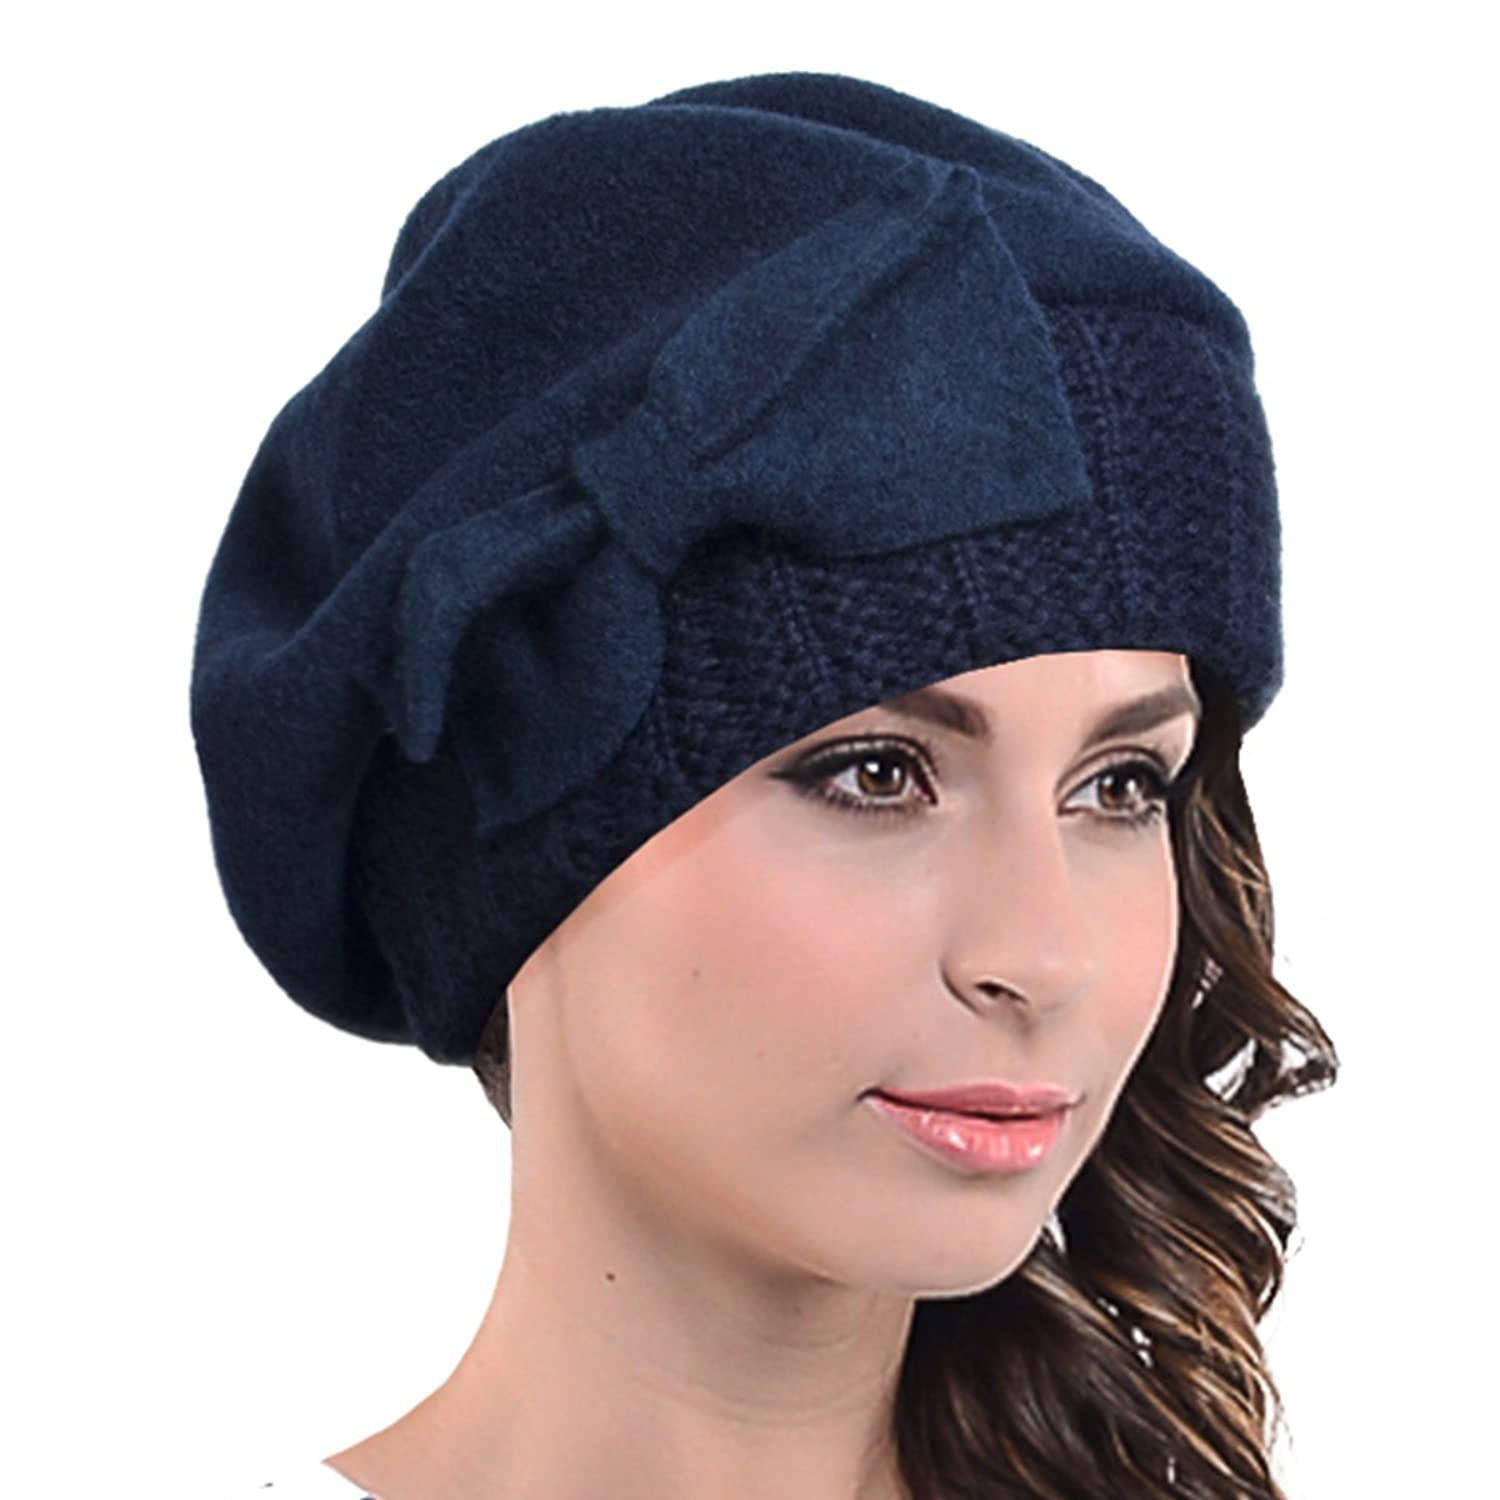 1940s Hairstyles- History of Women's Hairstyles Lady French Beret Wool Beret Chic Beanie Winter Hat Jf-br034 $21.99 AT vintagedancer.com